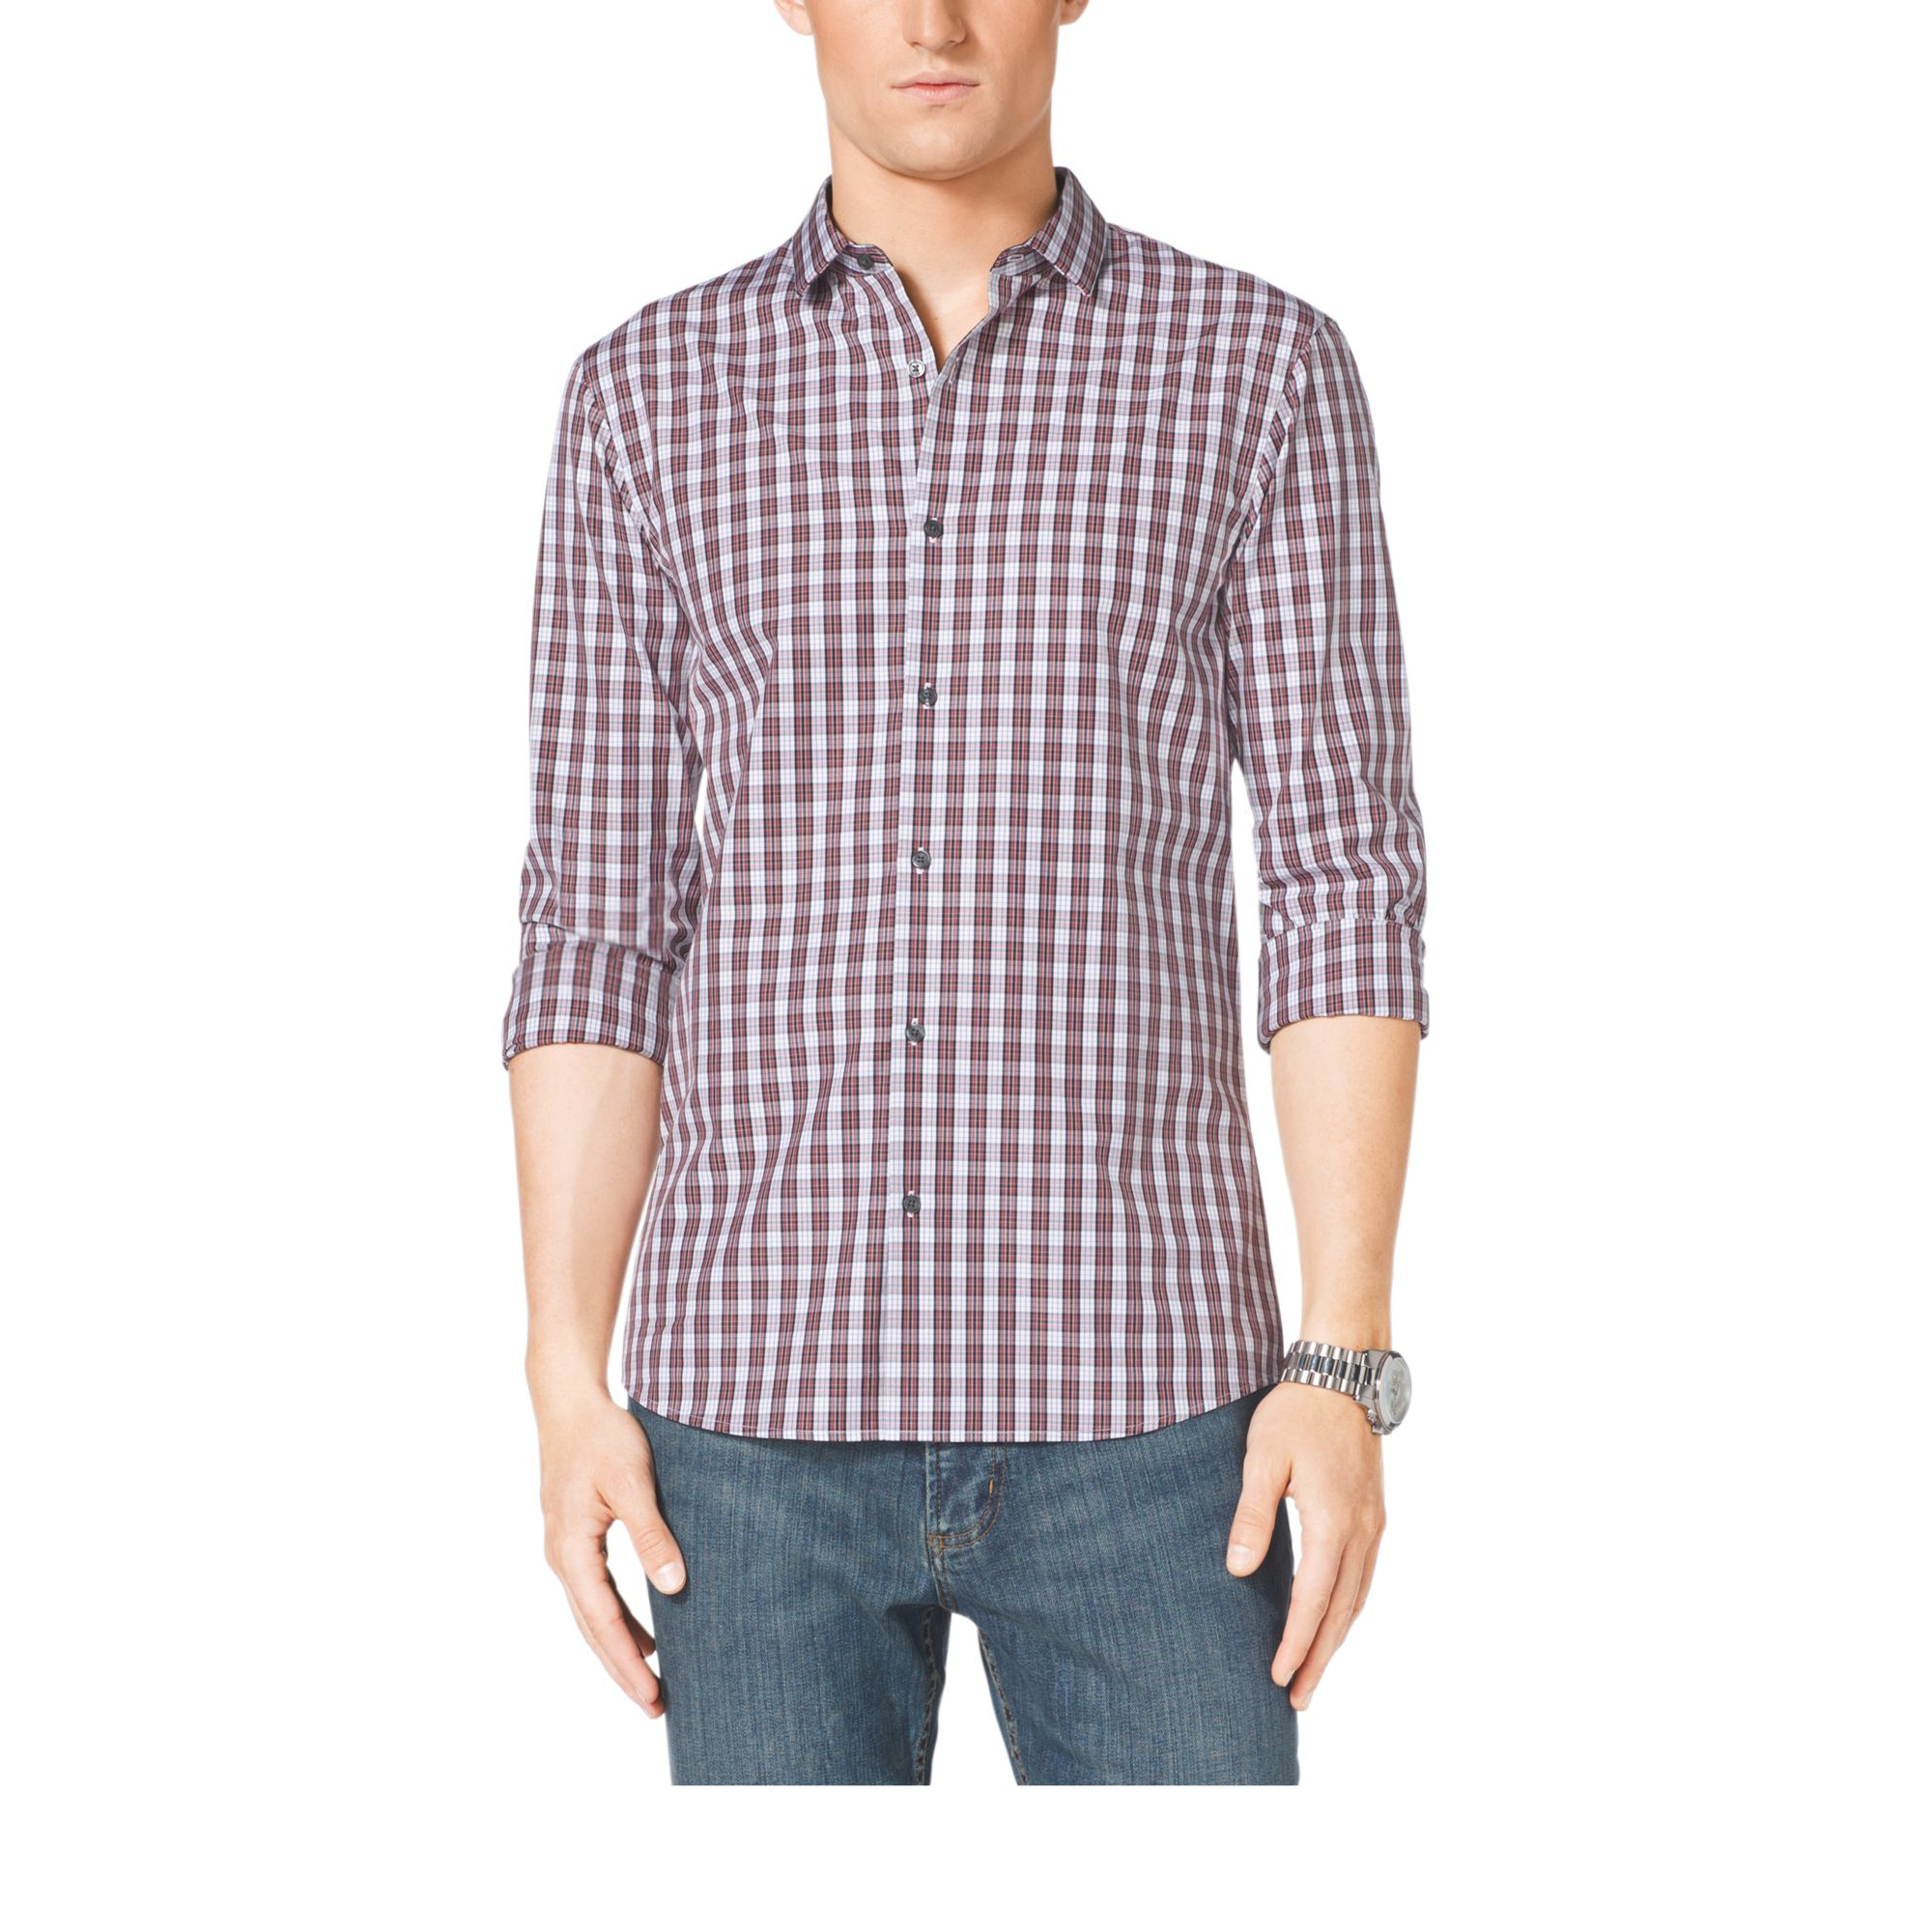 Michael Kors Slim Fit Check Cotton Shirt In Red For Men